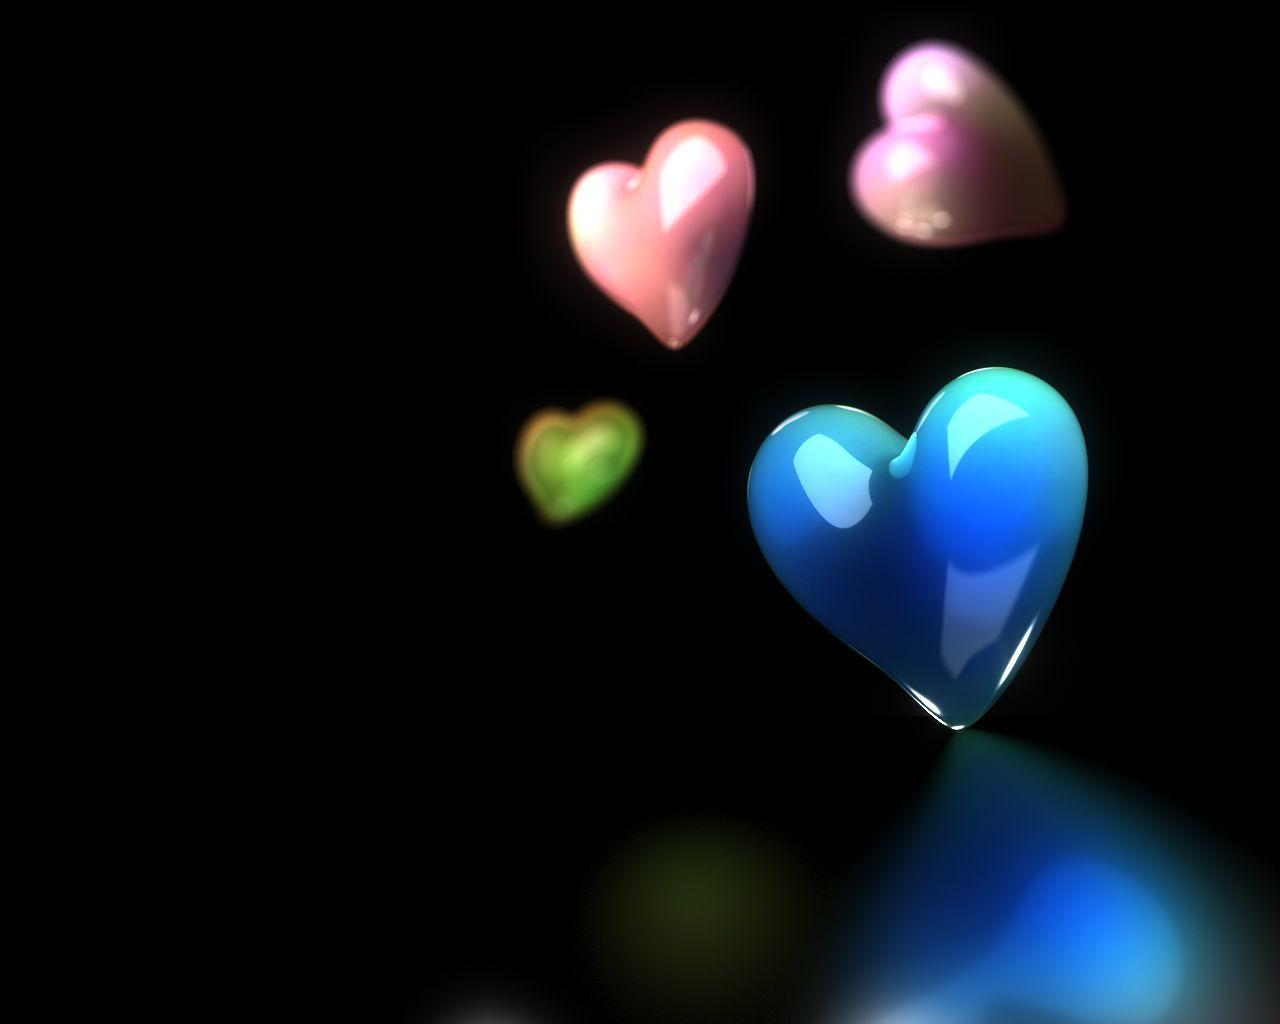 hearts with black backgrounds wallpaper cave